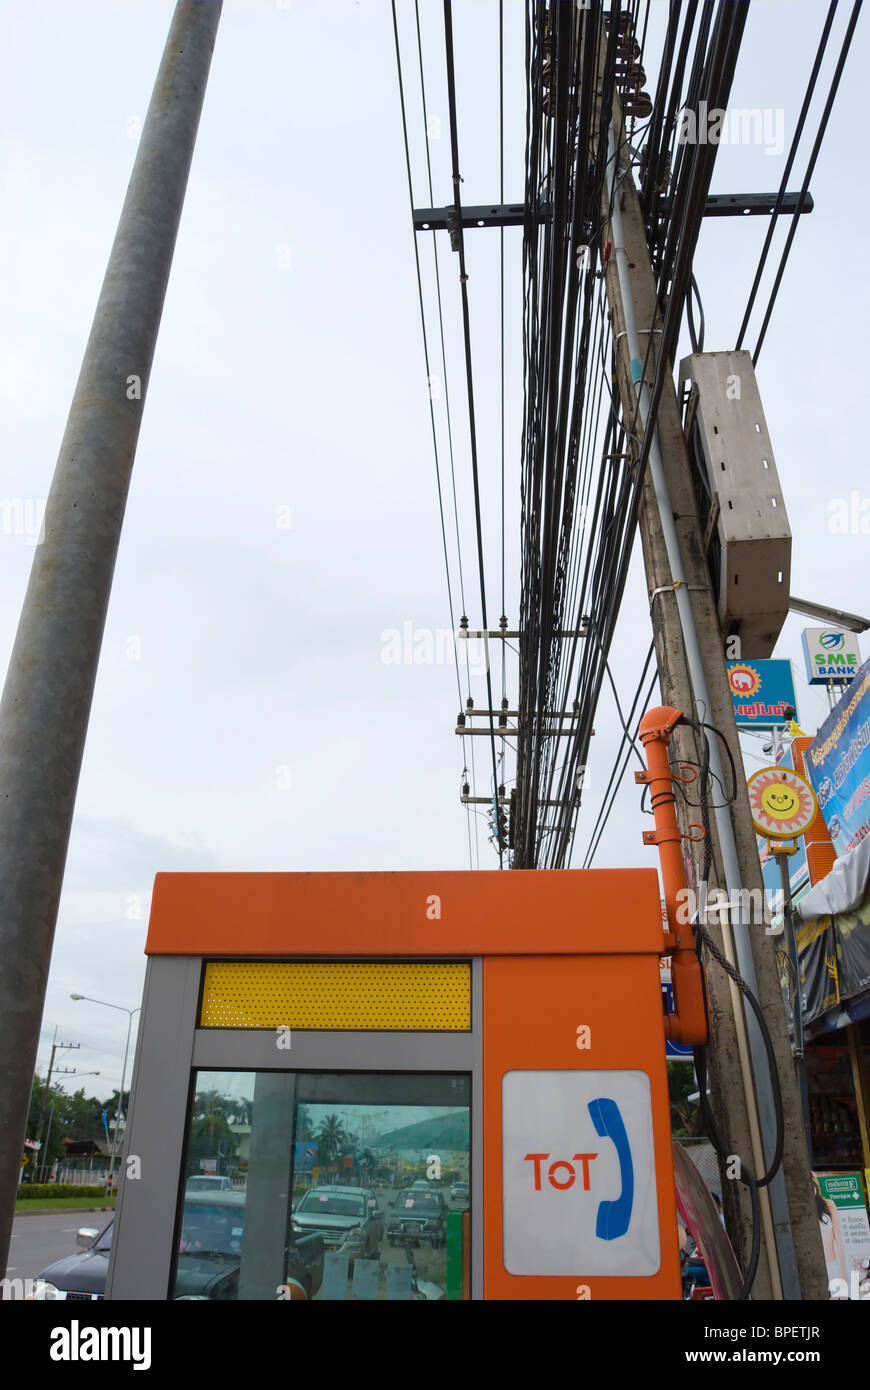 public telephone box with logo of tot, the telephone organisation of thailand, in phetchabun, thailand, south east - Stock Image